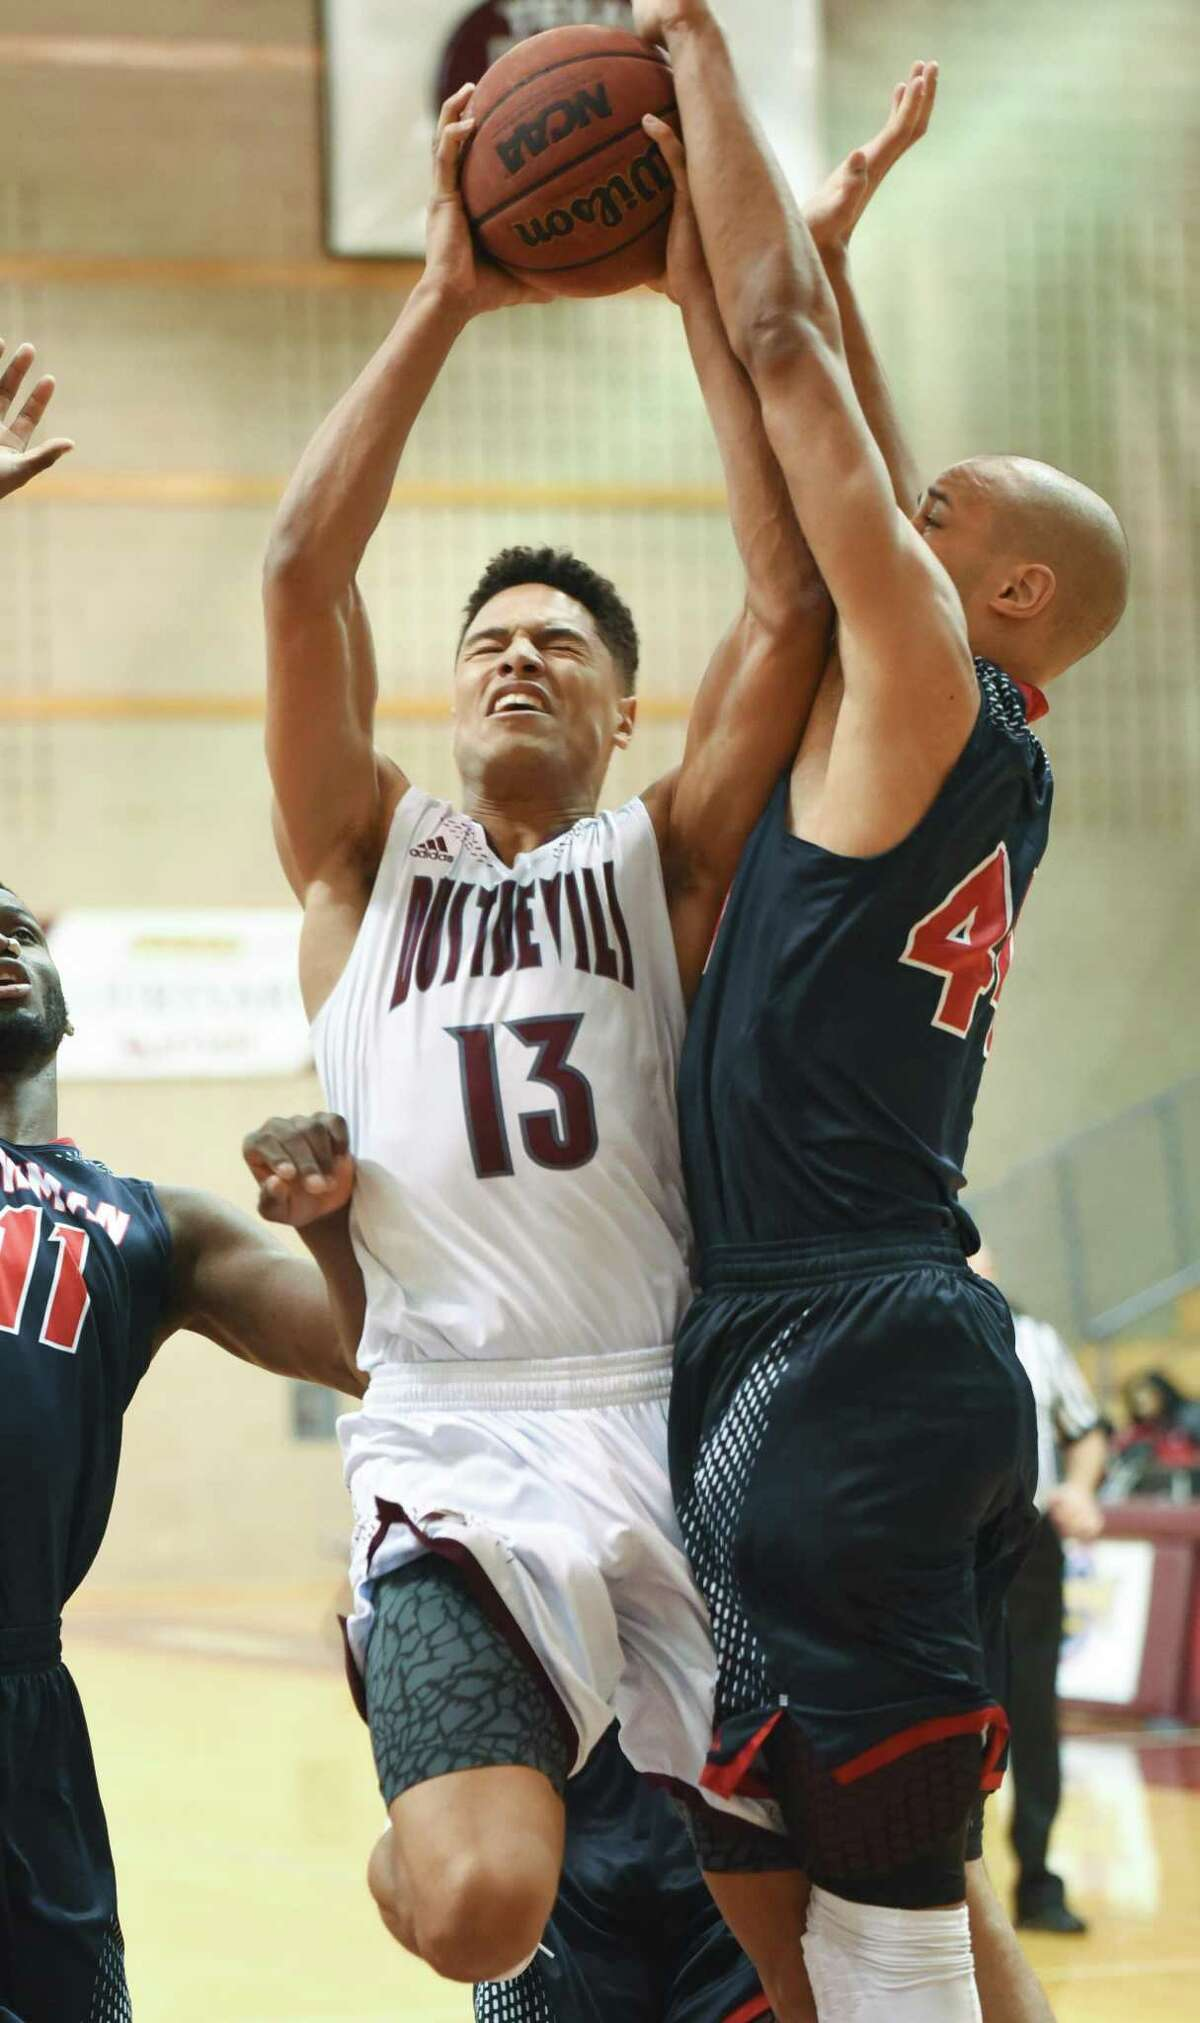 Xabier Gomez had 14 points Thursday but the Dustdevils were throttled 95-53 at Arkansas-Fort Smith, their second-largest loss in program history.